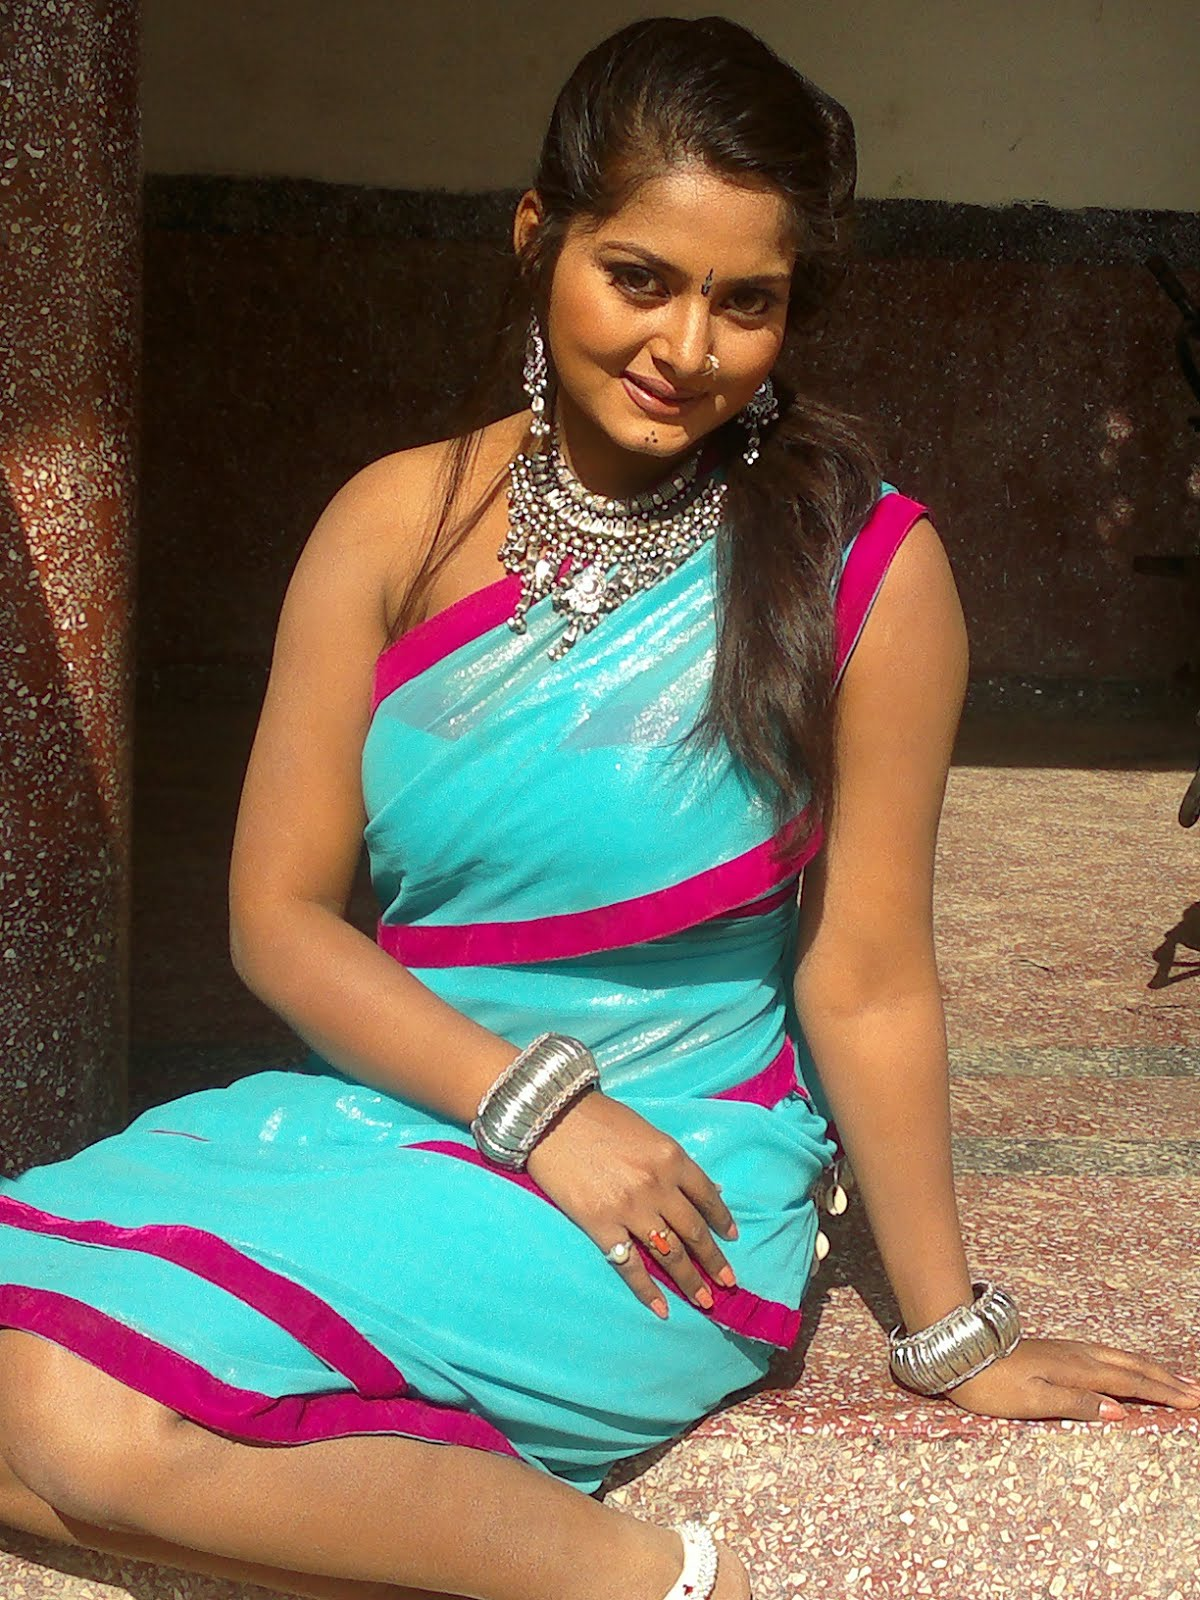 bhojpuri hot amp sexy photos of actresses   images pictures